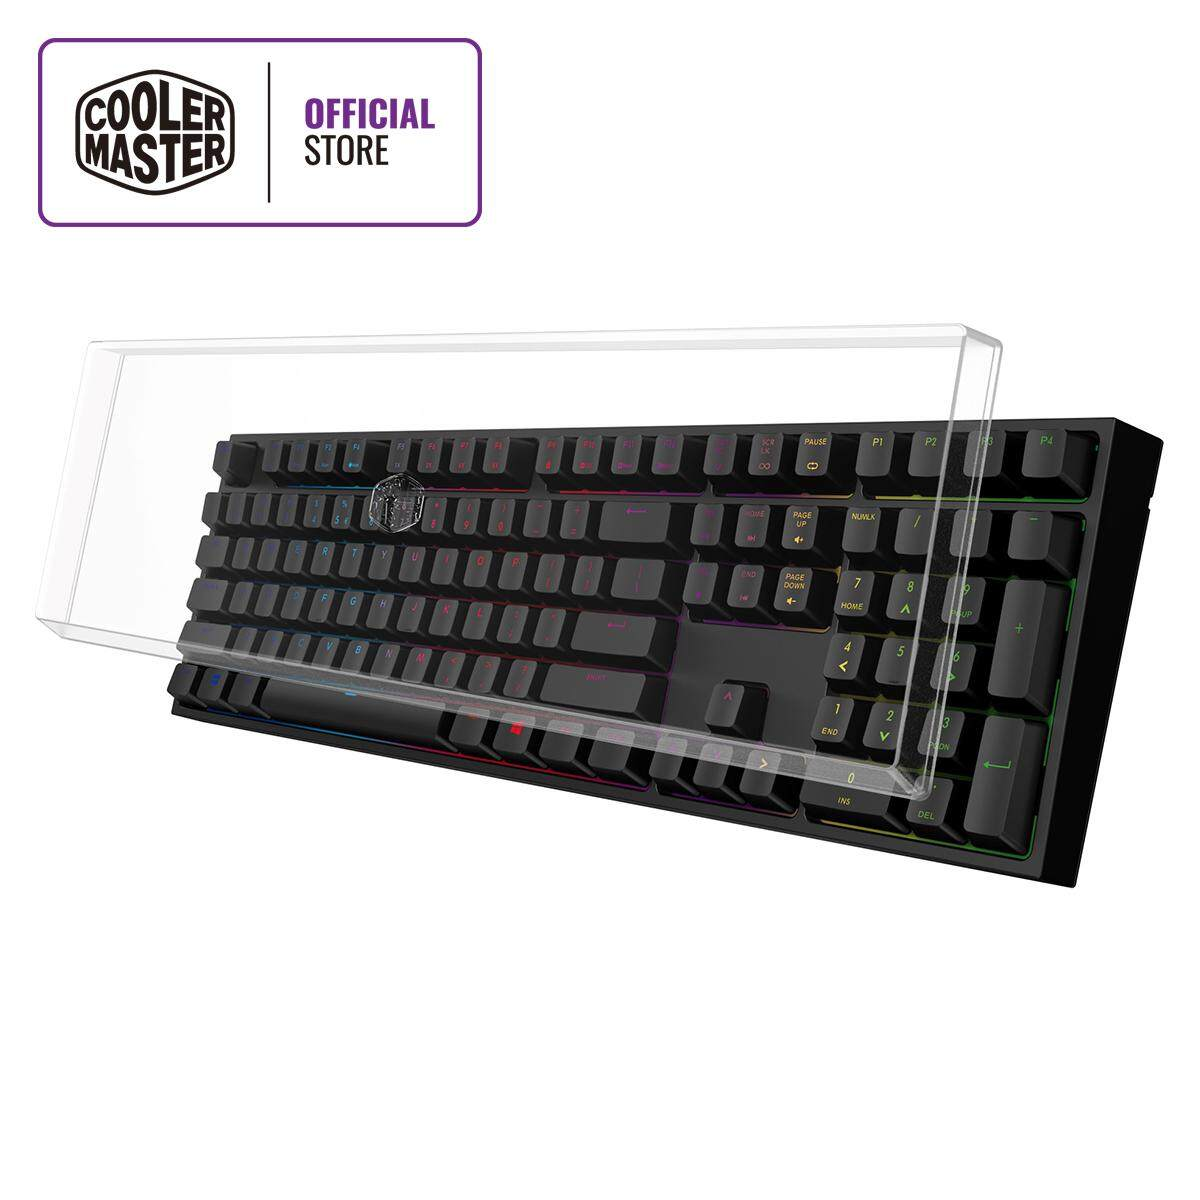 Cooler Master MasterAccessory Dustcover Malaysia